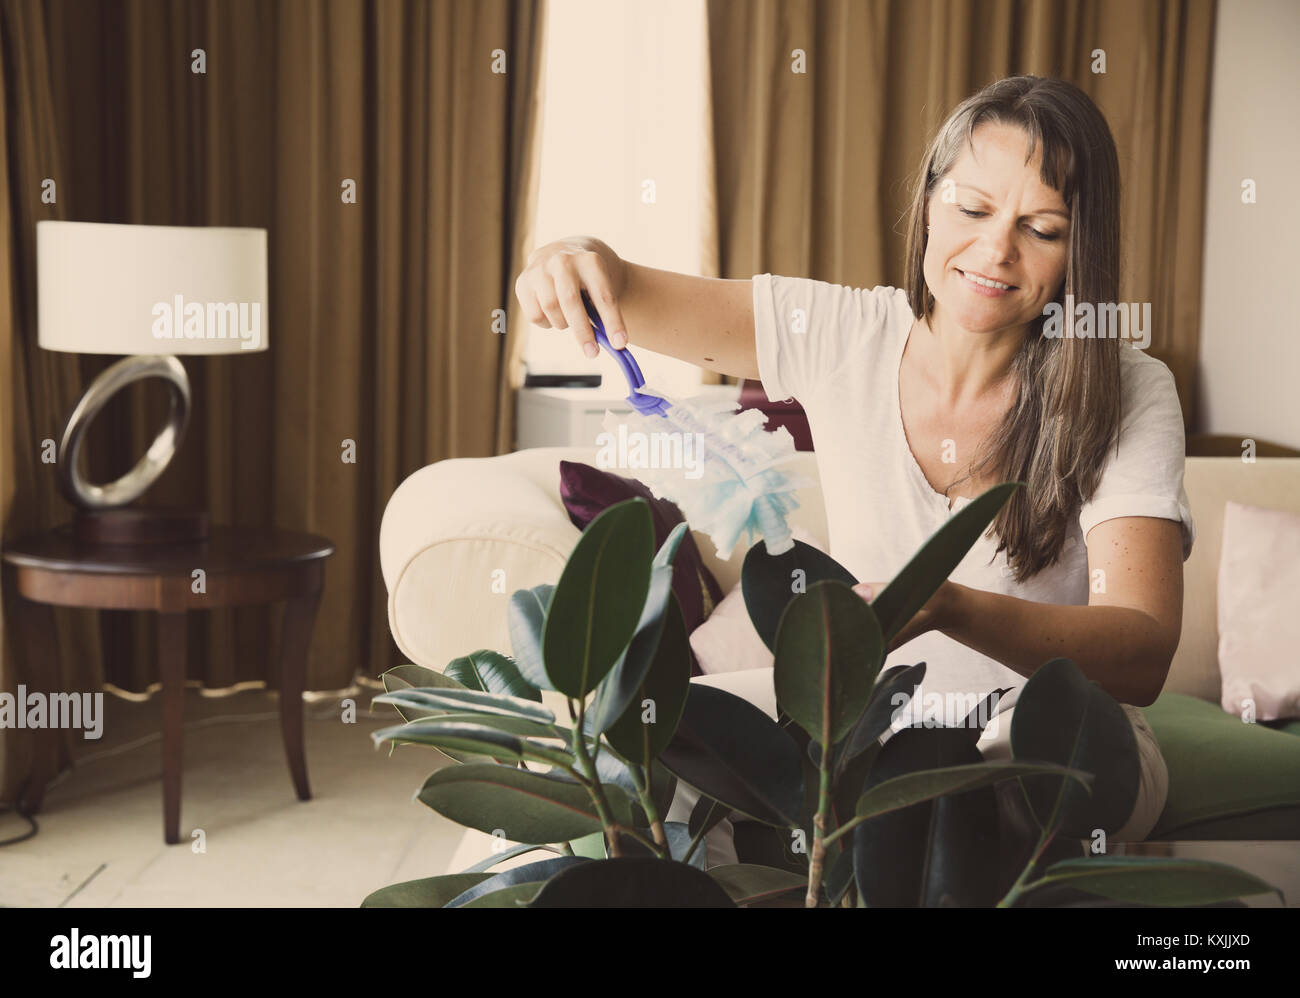 Mature woman is dusting rubber tree in her apartment - Stock Image